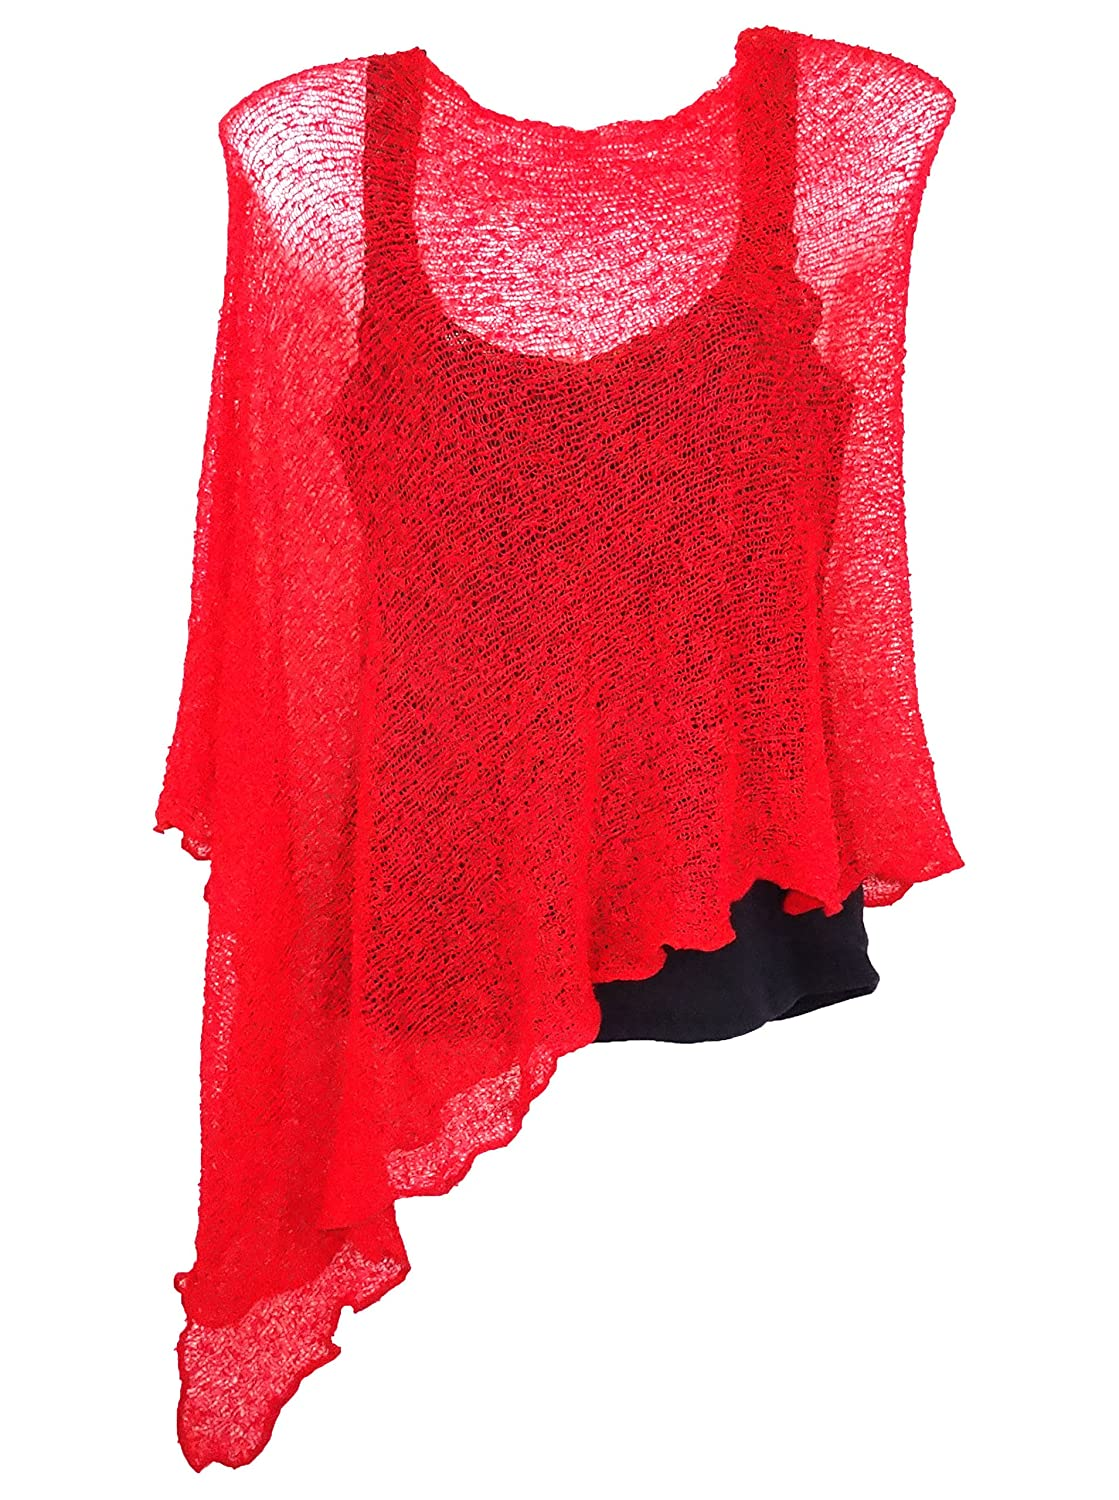 Poncho Rouge Gilet Cache Coeur Pull Femme Taille Unique Shrug Red Maill  Aérée Leger cape red 605df9f691ce